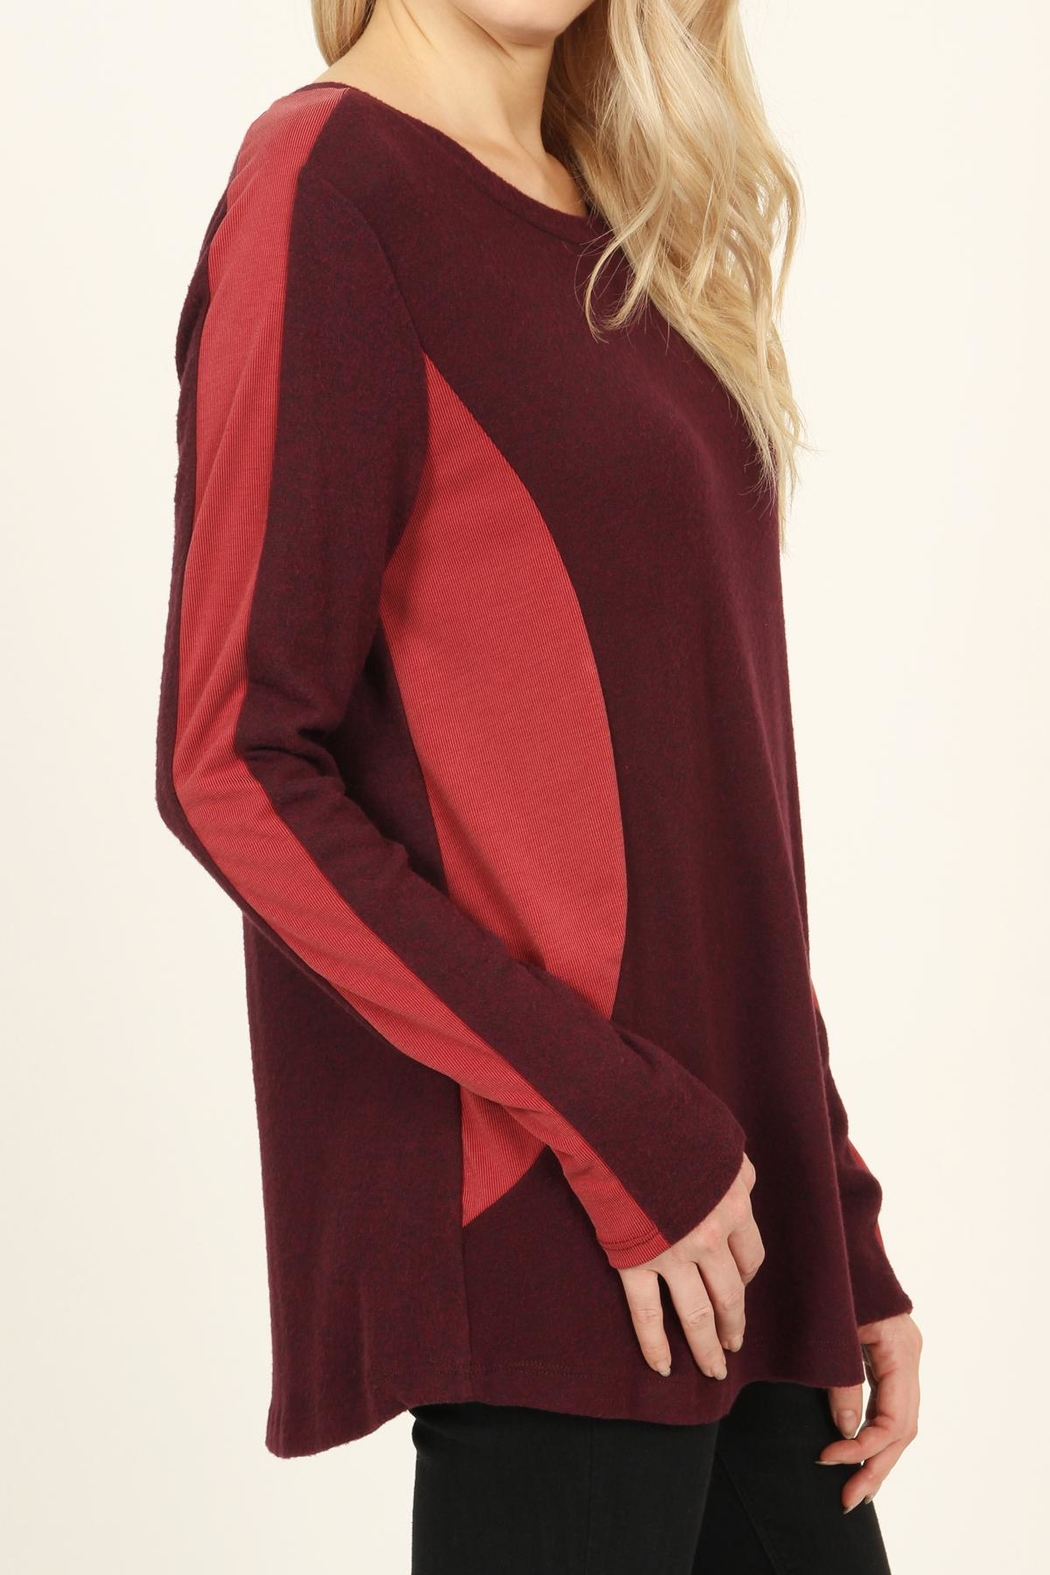 Riah Fashion Two-Tone-Side & Sleeve-Accented-Sweater - Back Cropped Image